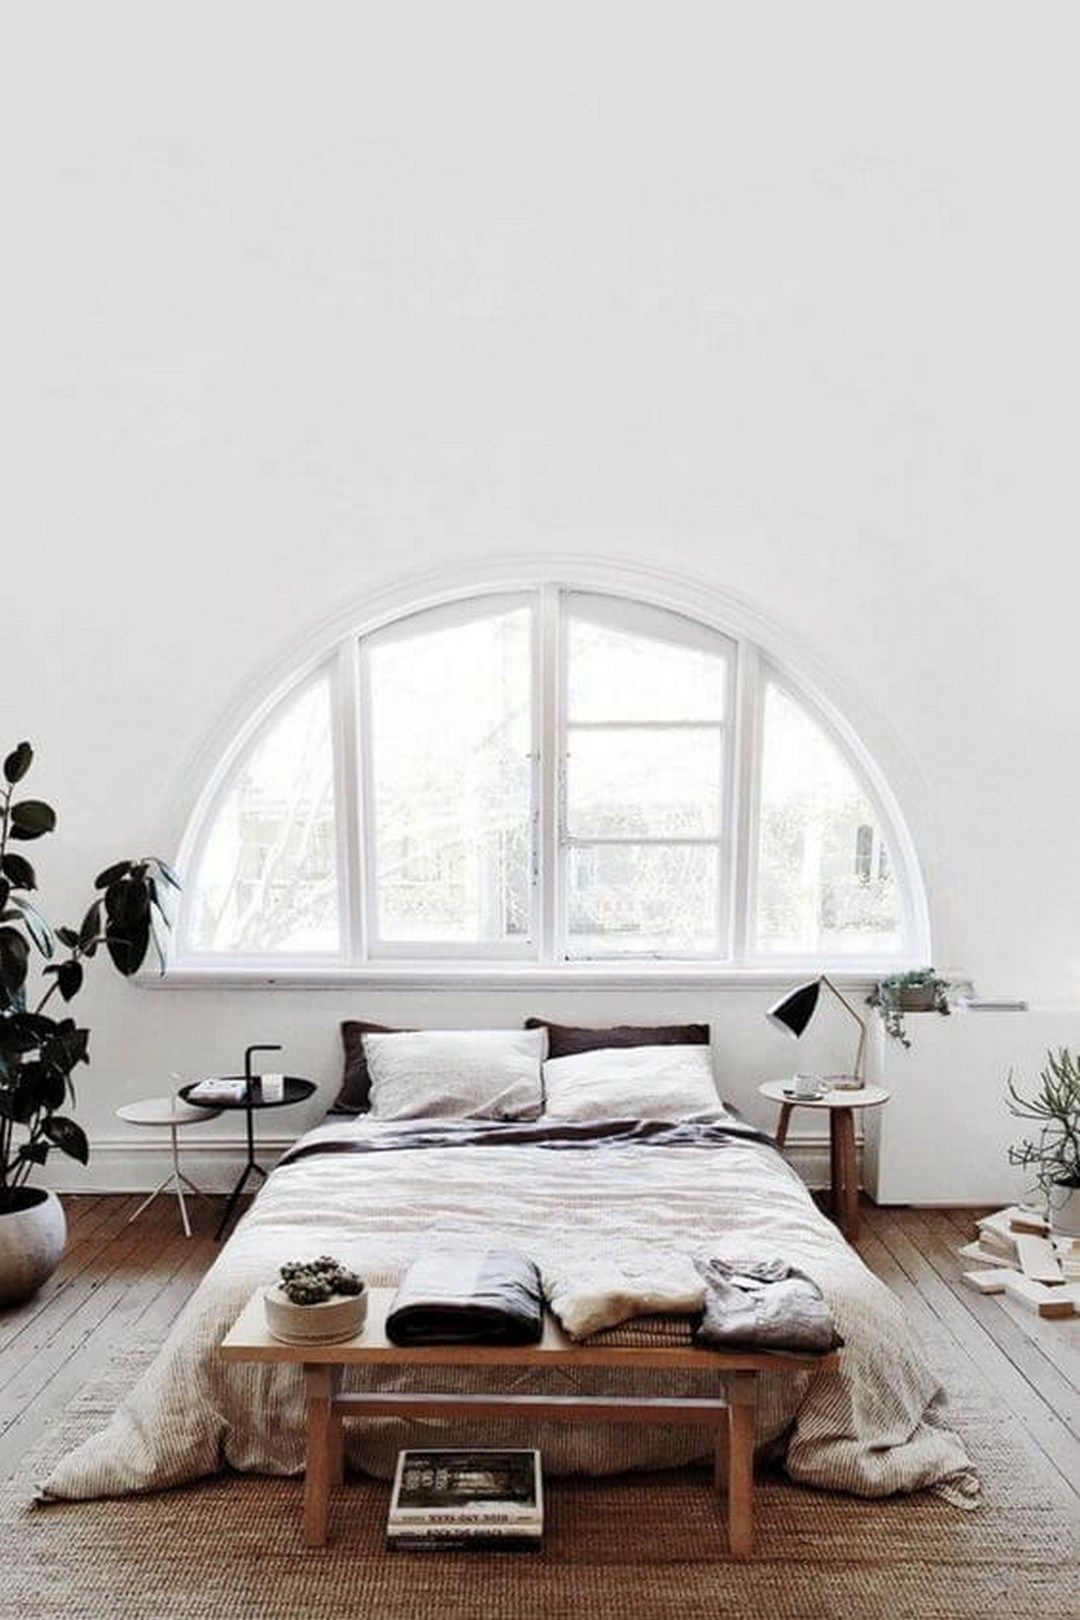 Modern And Stylish Rustic Scandinavian Bedroom Decor